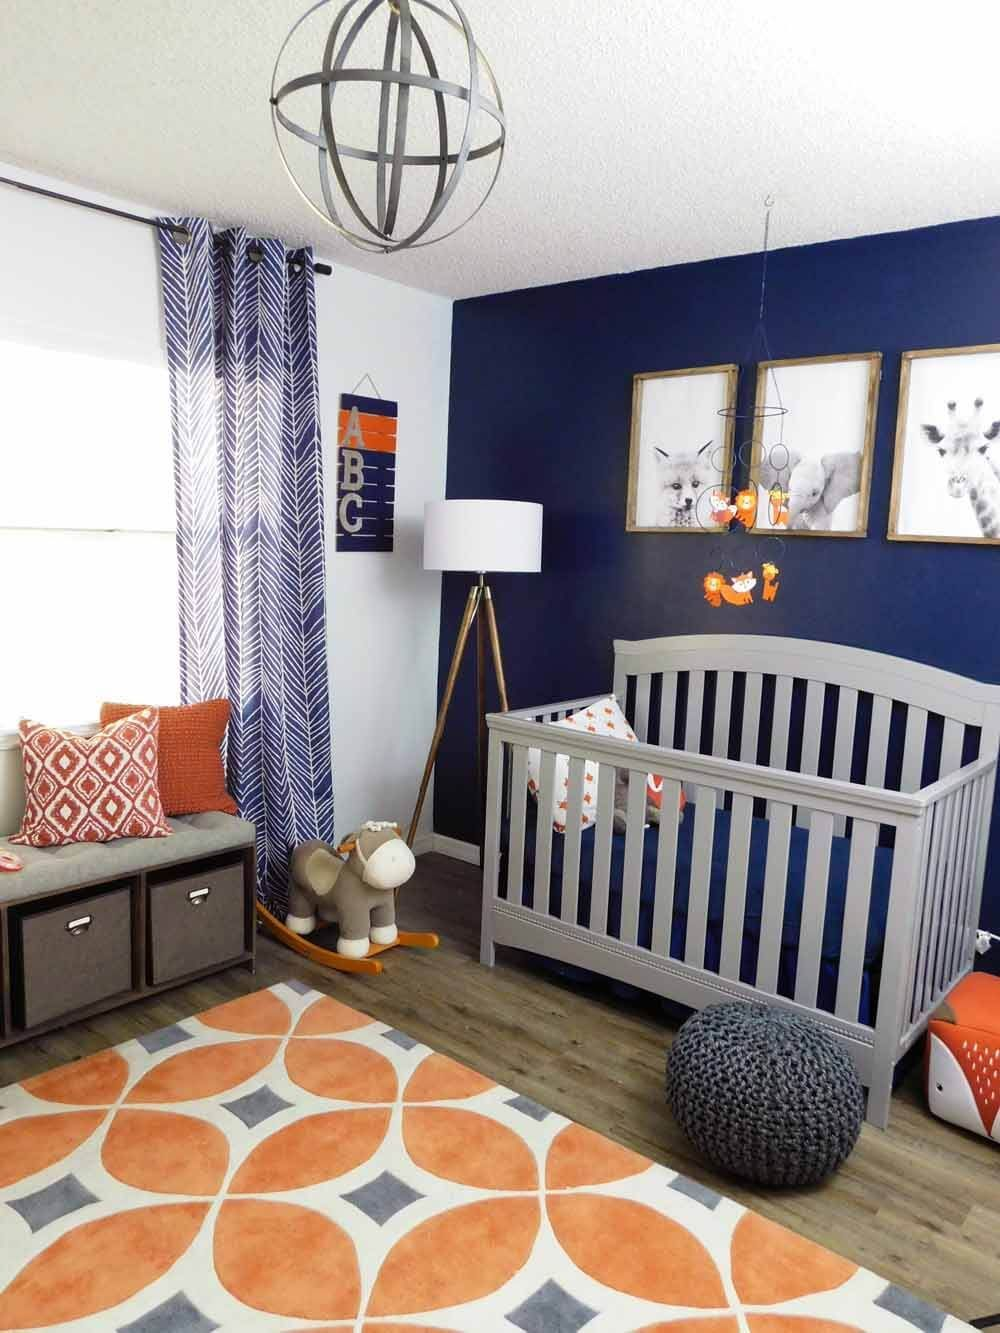 21 Best Playroom Design Ideas Inspiration For Kids | Baby